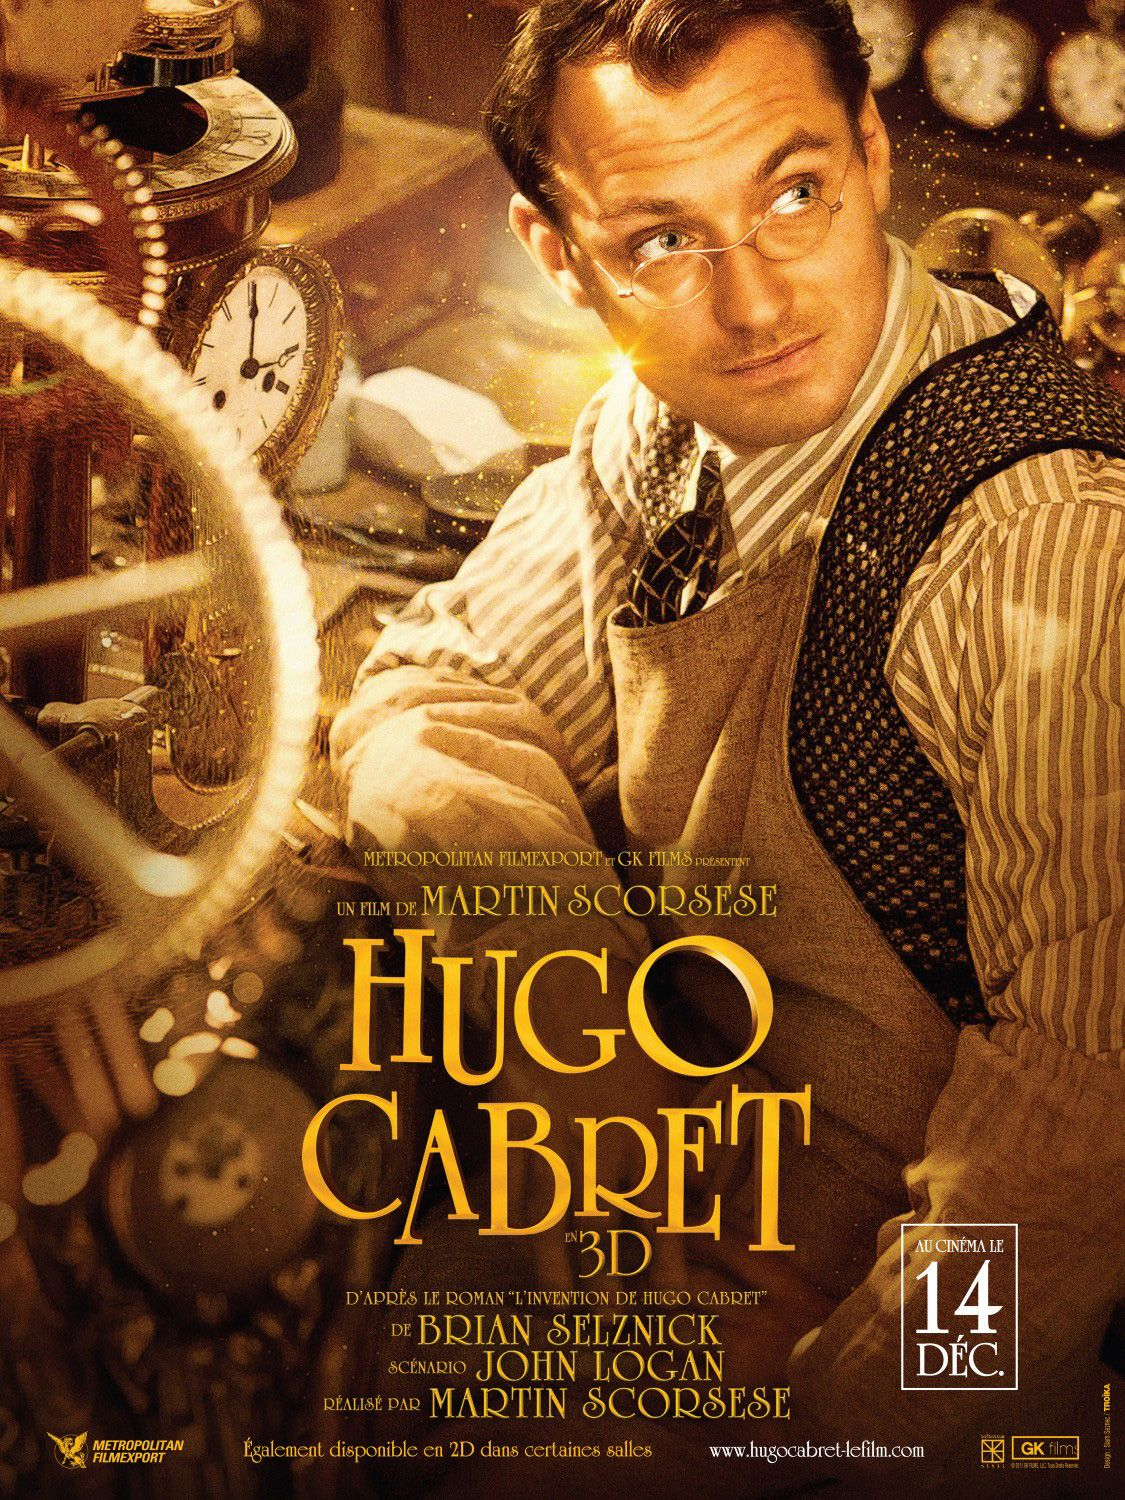 Pin On The Invention Of Hugo Cabret